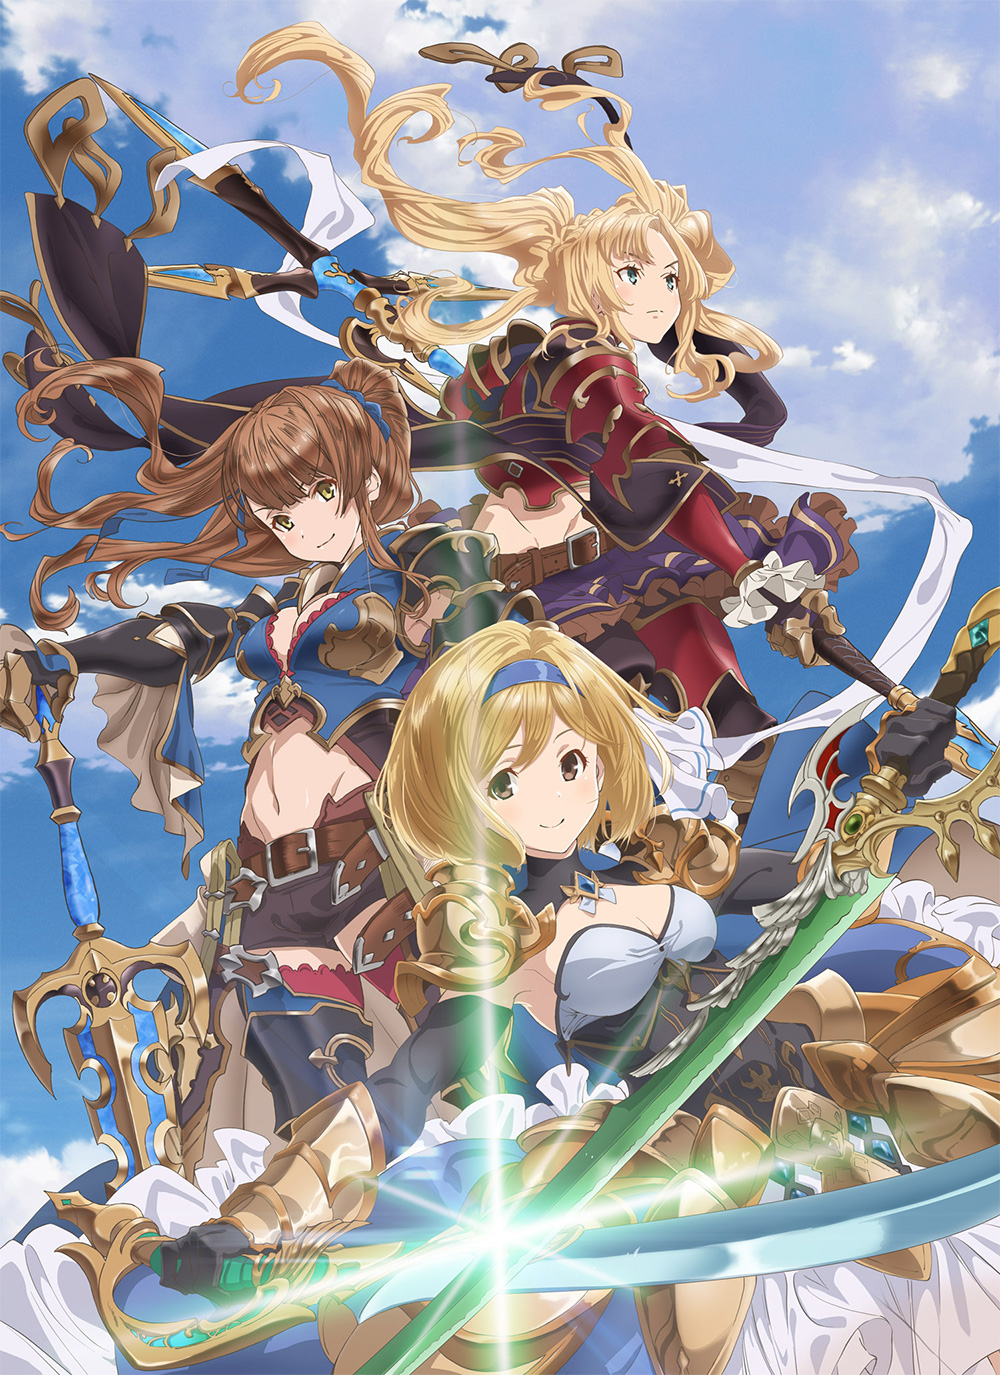 Granblue-Anime-Season-2-Visual-02